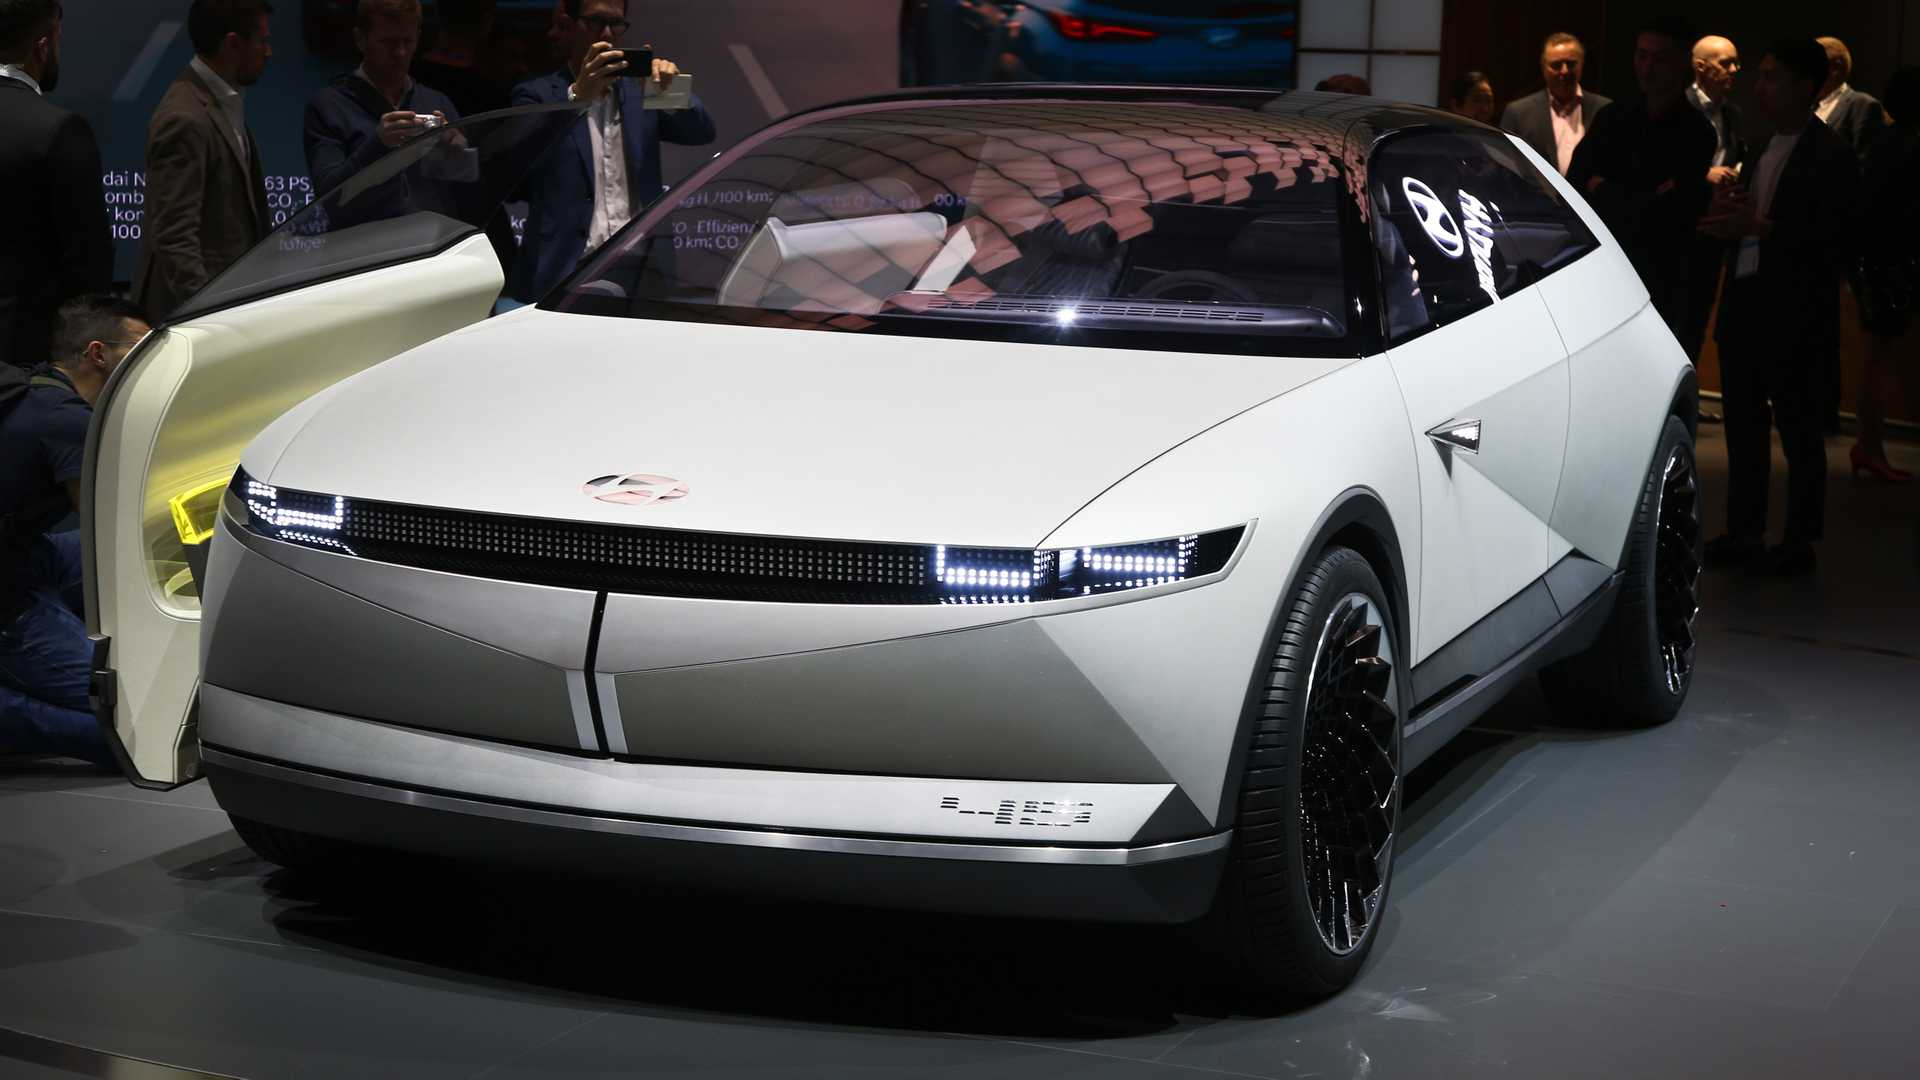 Hyundai 45 Concept Draws Inspiration From Past, Looks Into Future